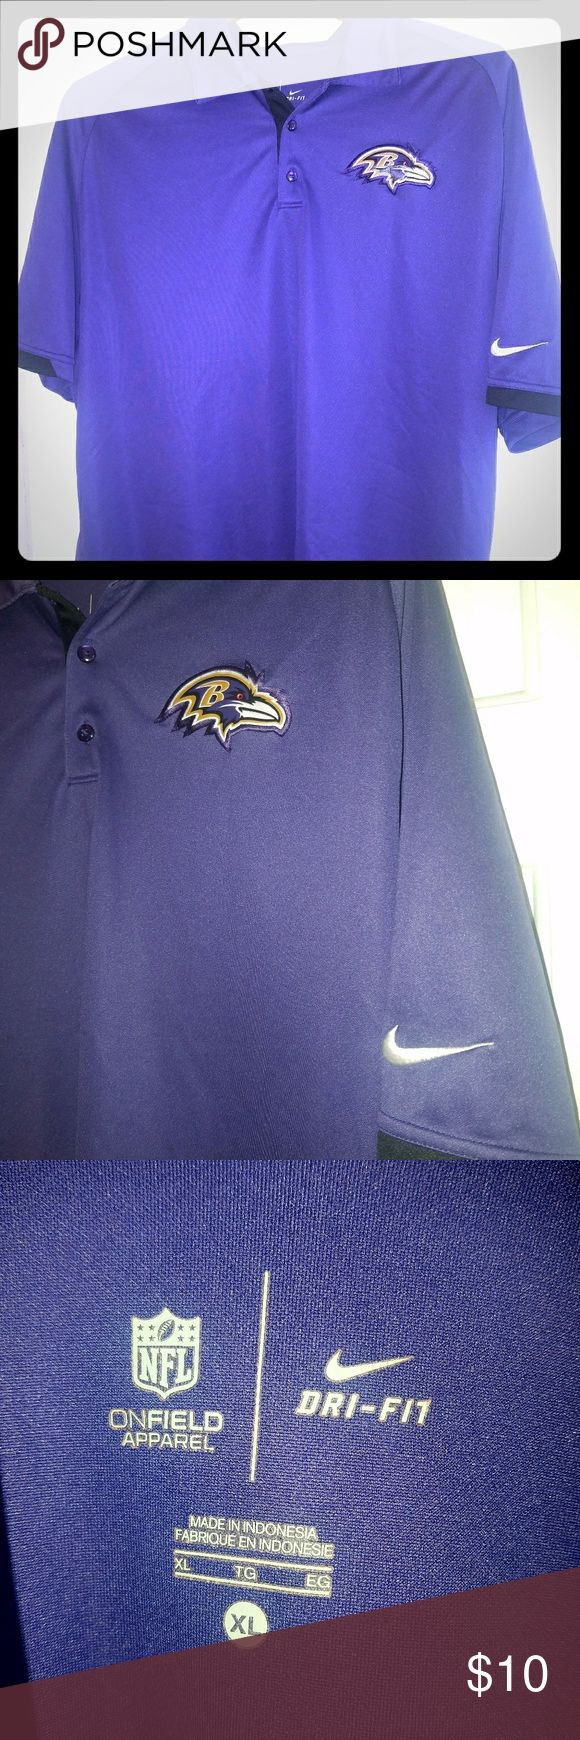 NIKE DRI-FIT 🏈Baltimore Ravens🏈 Polo MEN's barely worn nylon/dri-fit Nike polo shirt. Unfortunately, from storage has 2 snags in the fabric. Will still wear well and look great! Nike Shirts Polos